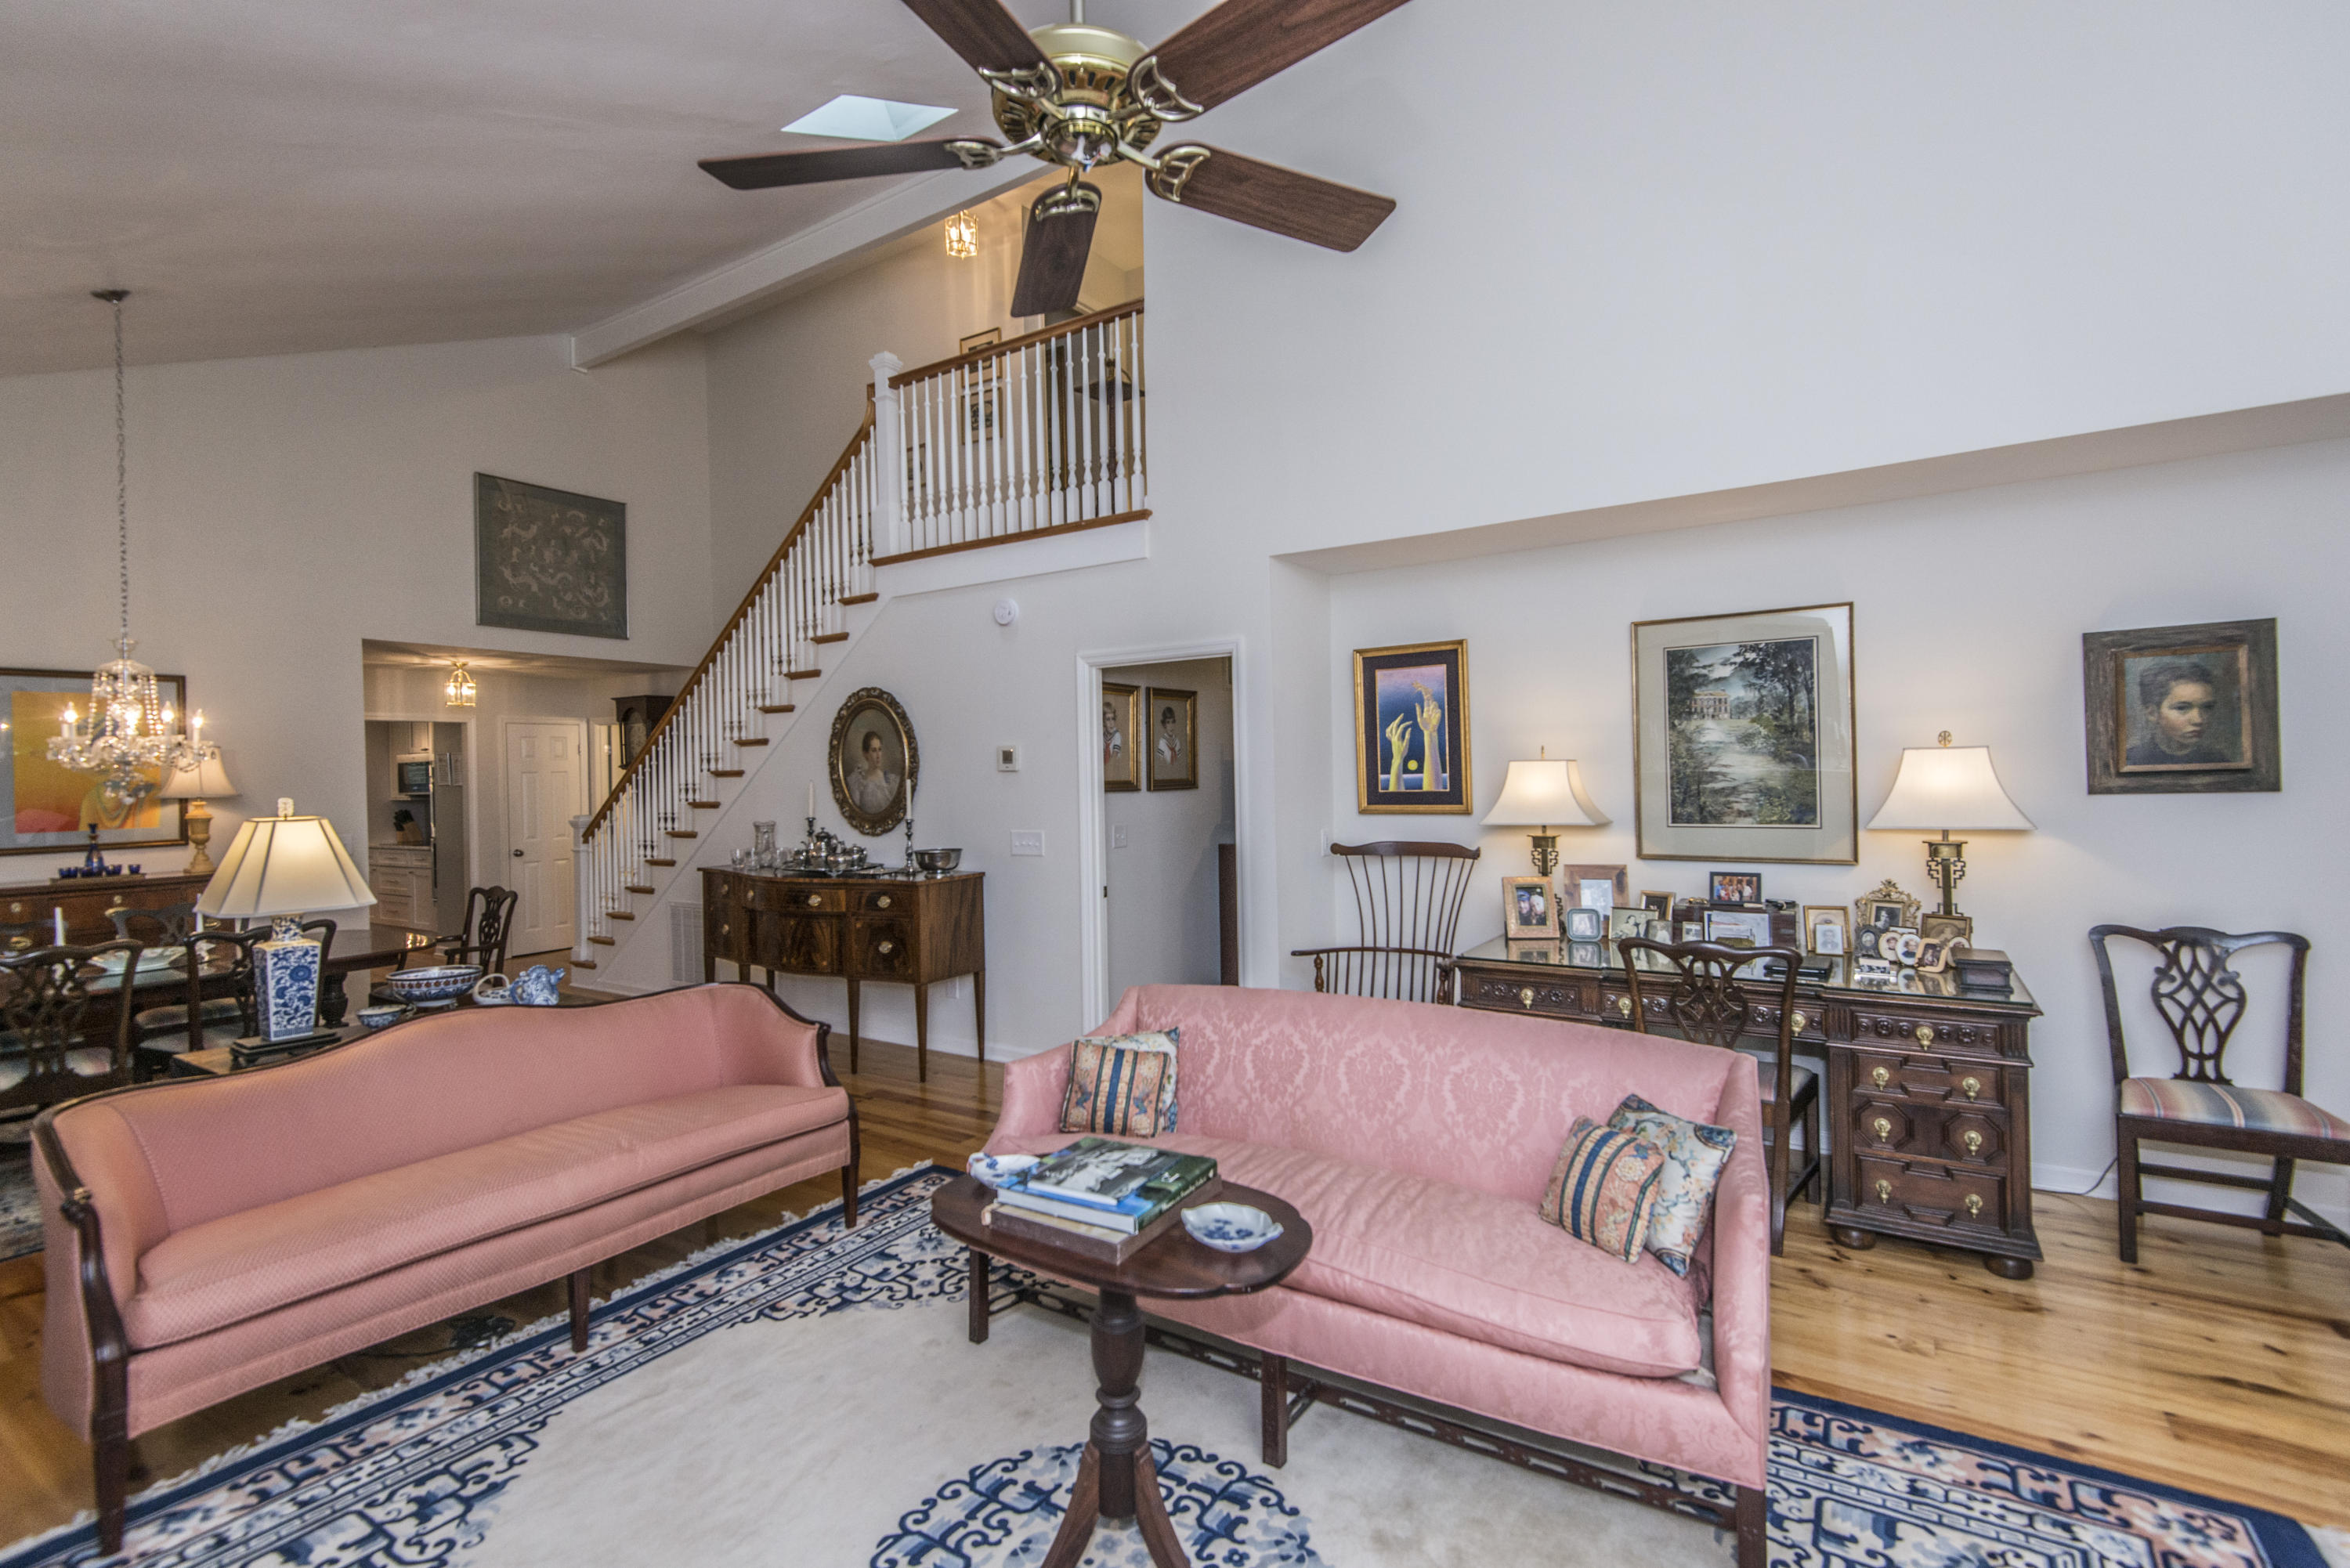 Wappoo Creek Place Homes For Sale - 26 Wappoo Creek Place, Charleston, SC - 18